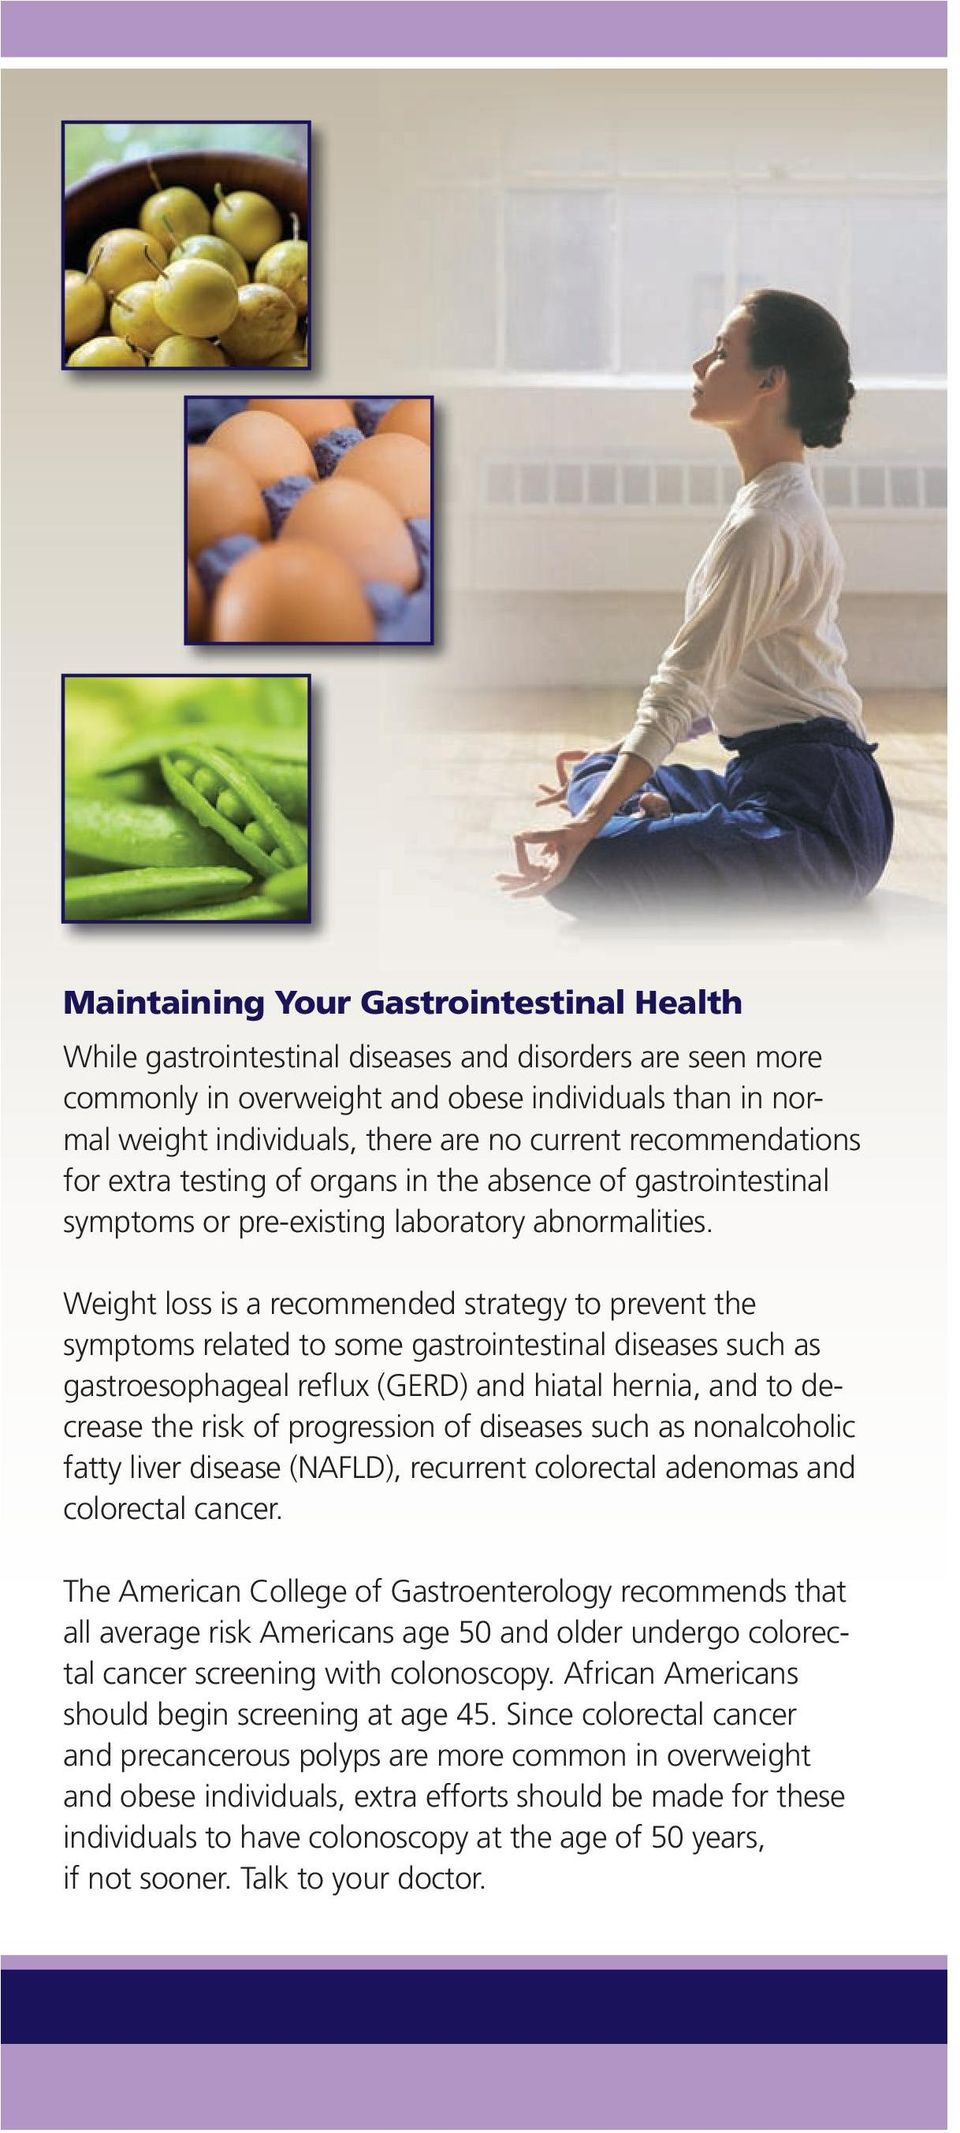 Weight loss is a recommended strategy to prevent the symptoms related to some gastrointestinal diseases such as gastroesophageal reflux (GERD) and hiatal hernia, and to decrease the risk of